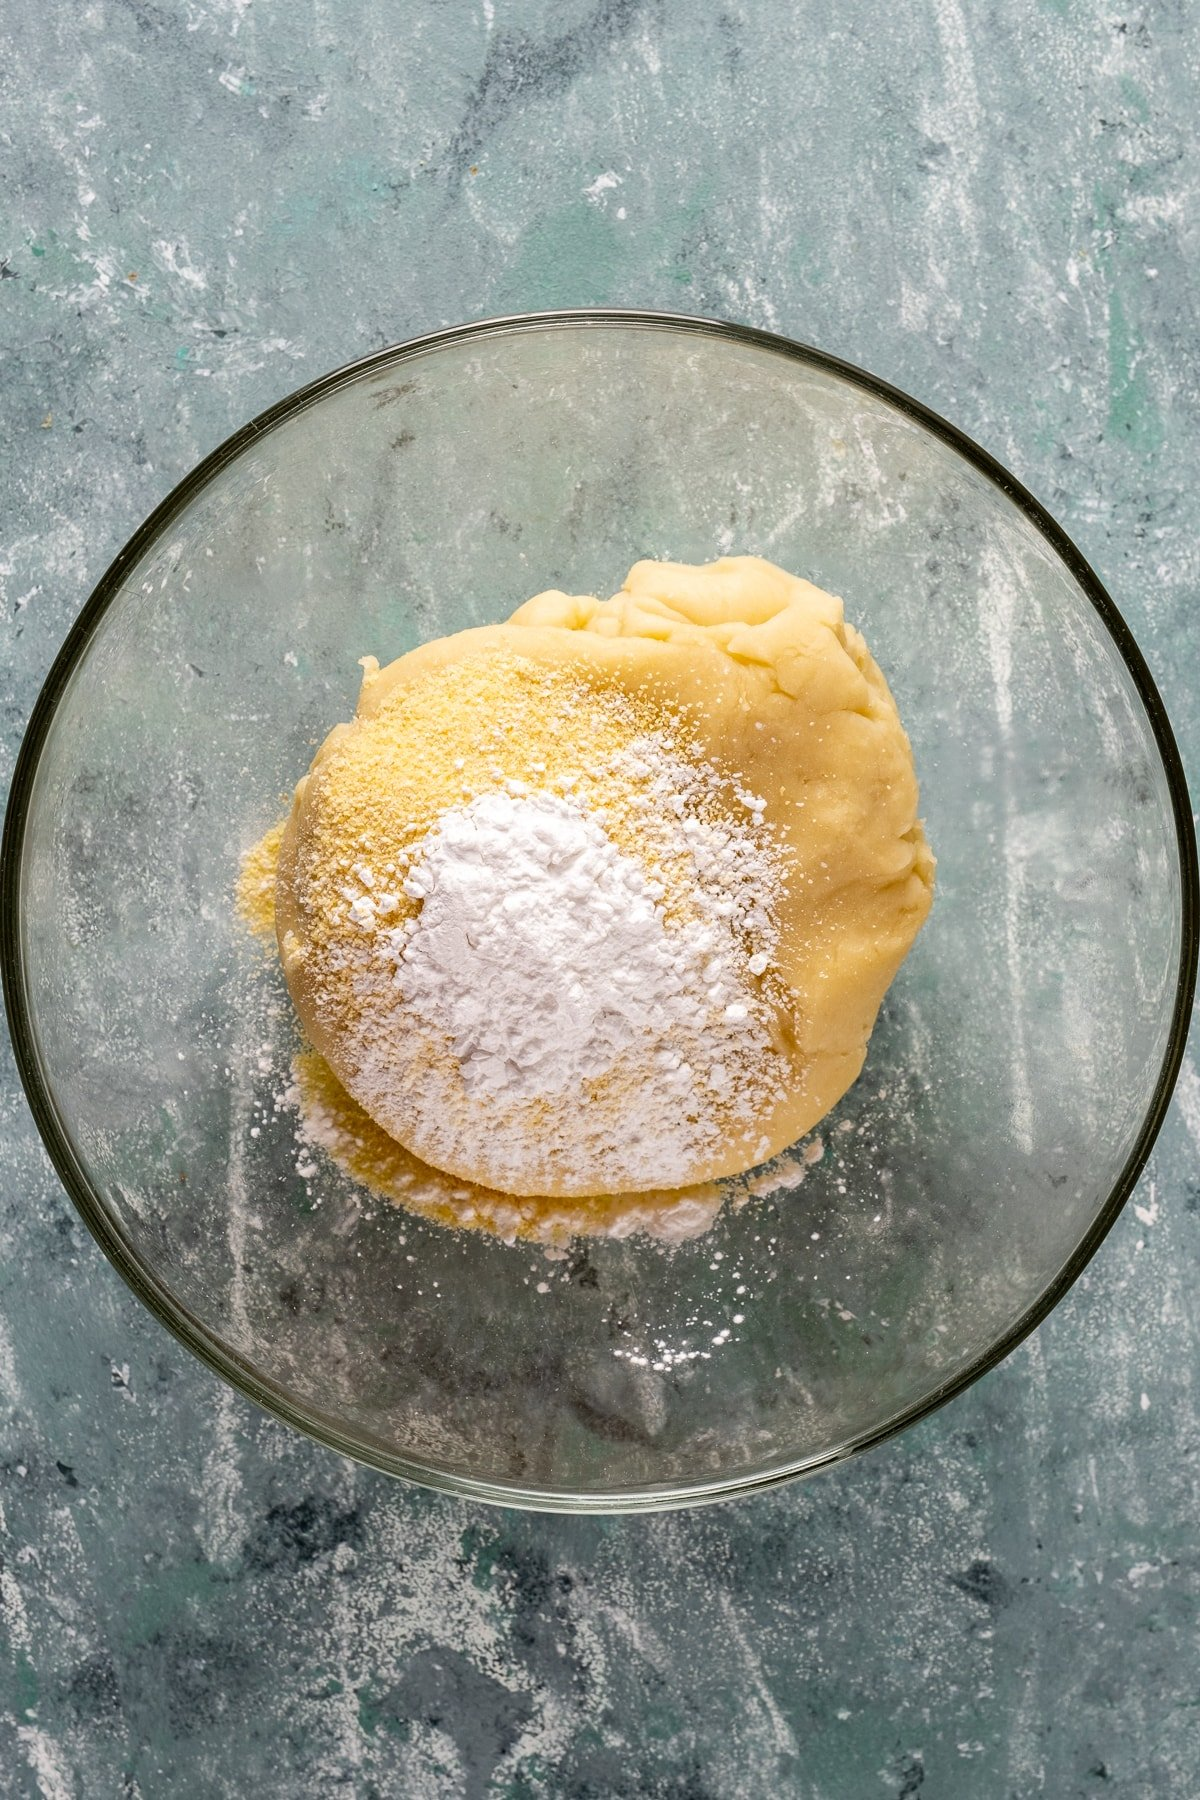 Tulumba dessert dough topped with cornstarch in a glass mixing bowl.